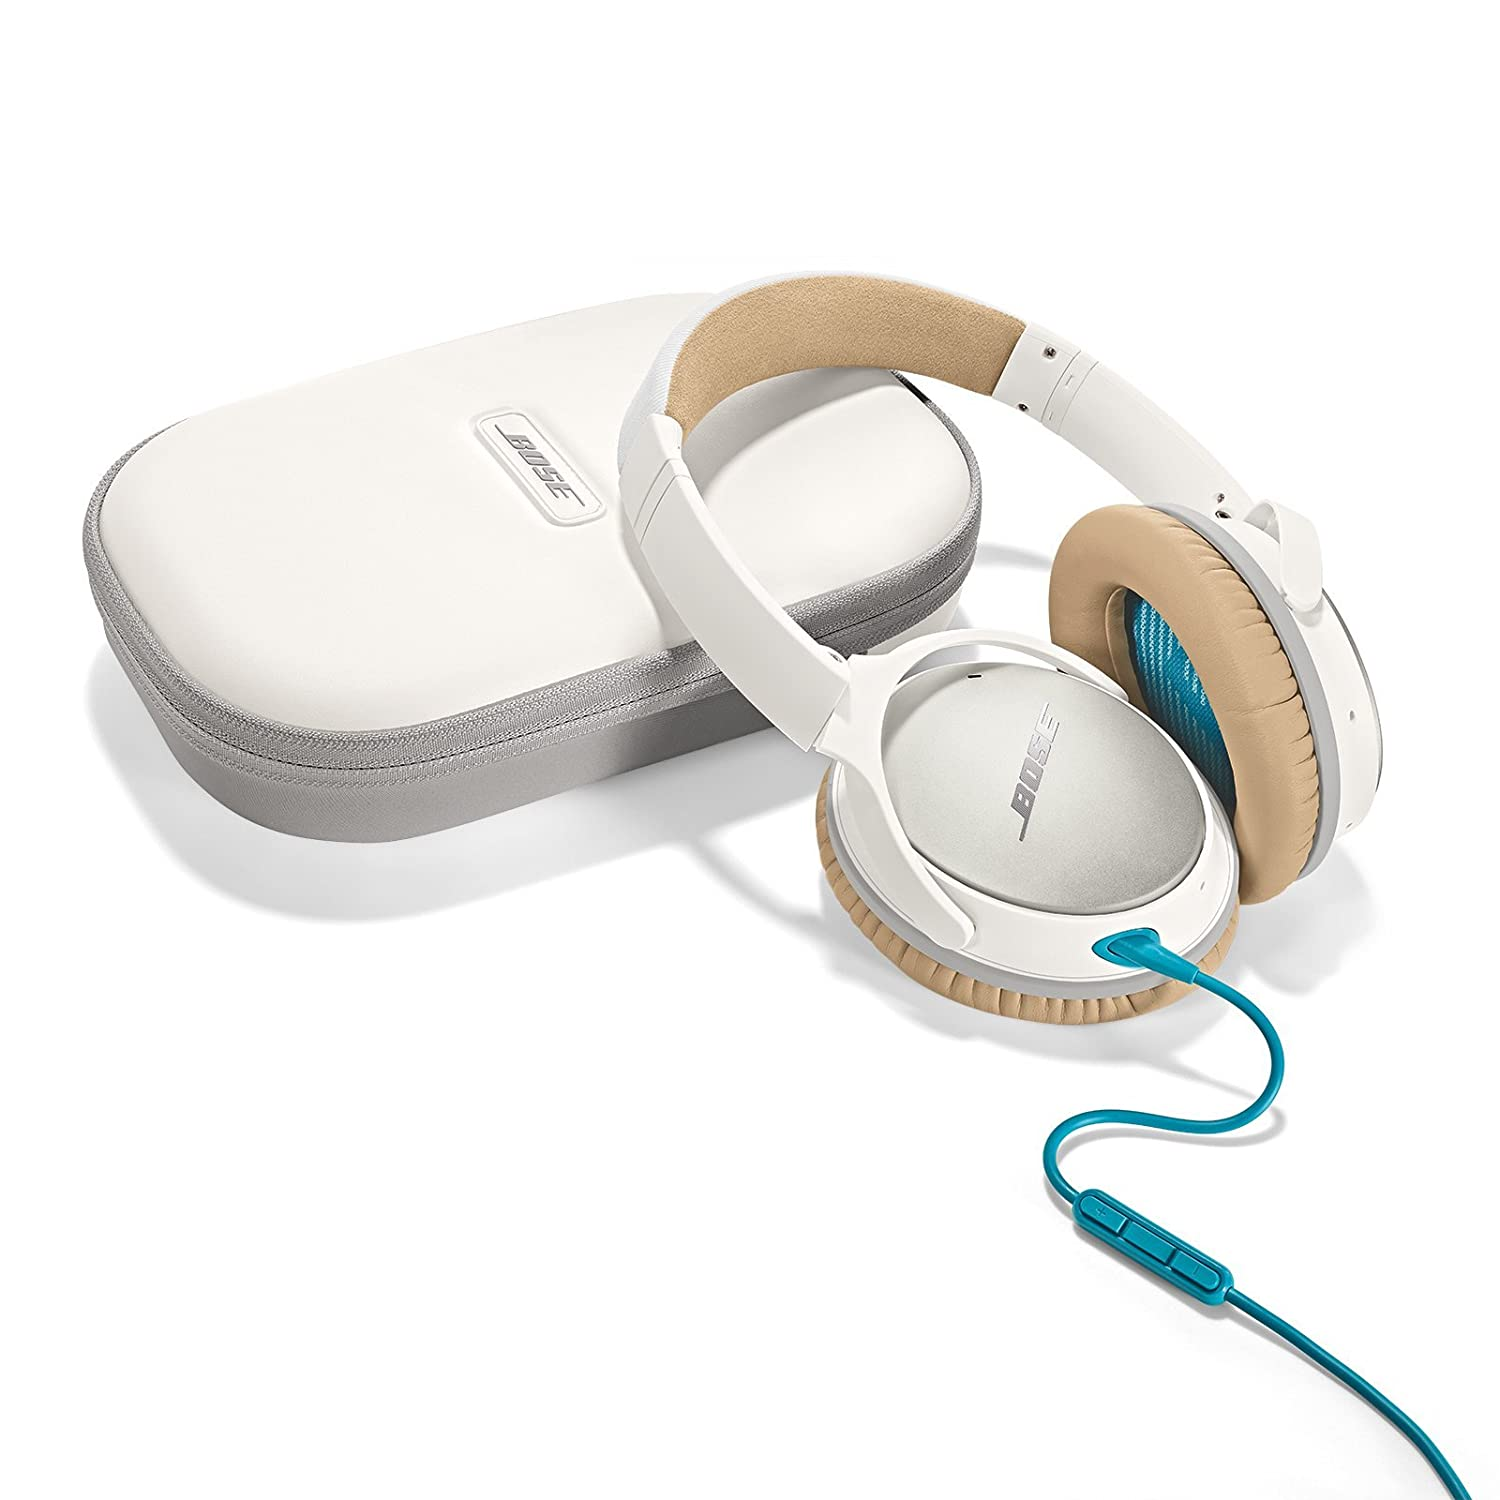 Top 5 Best Noise Cancelling Headphones for Studying